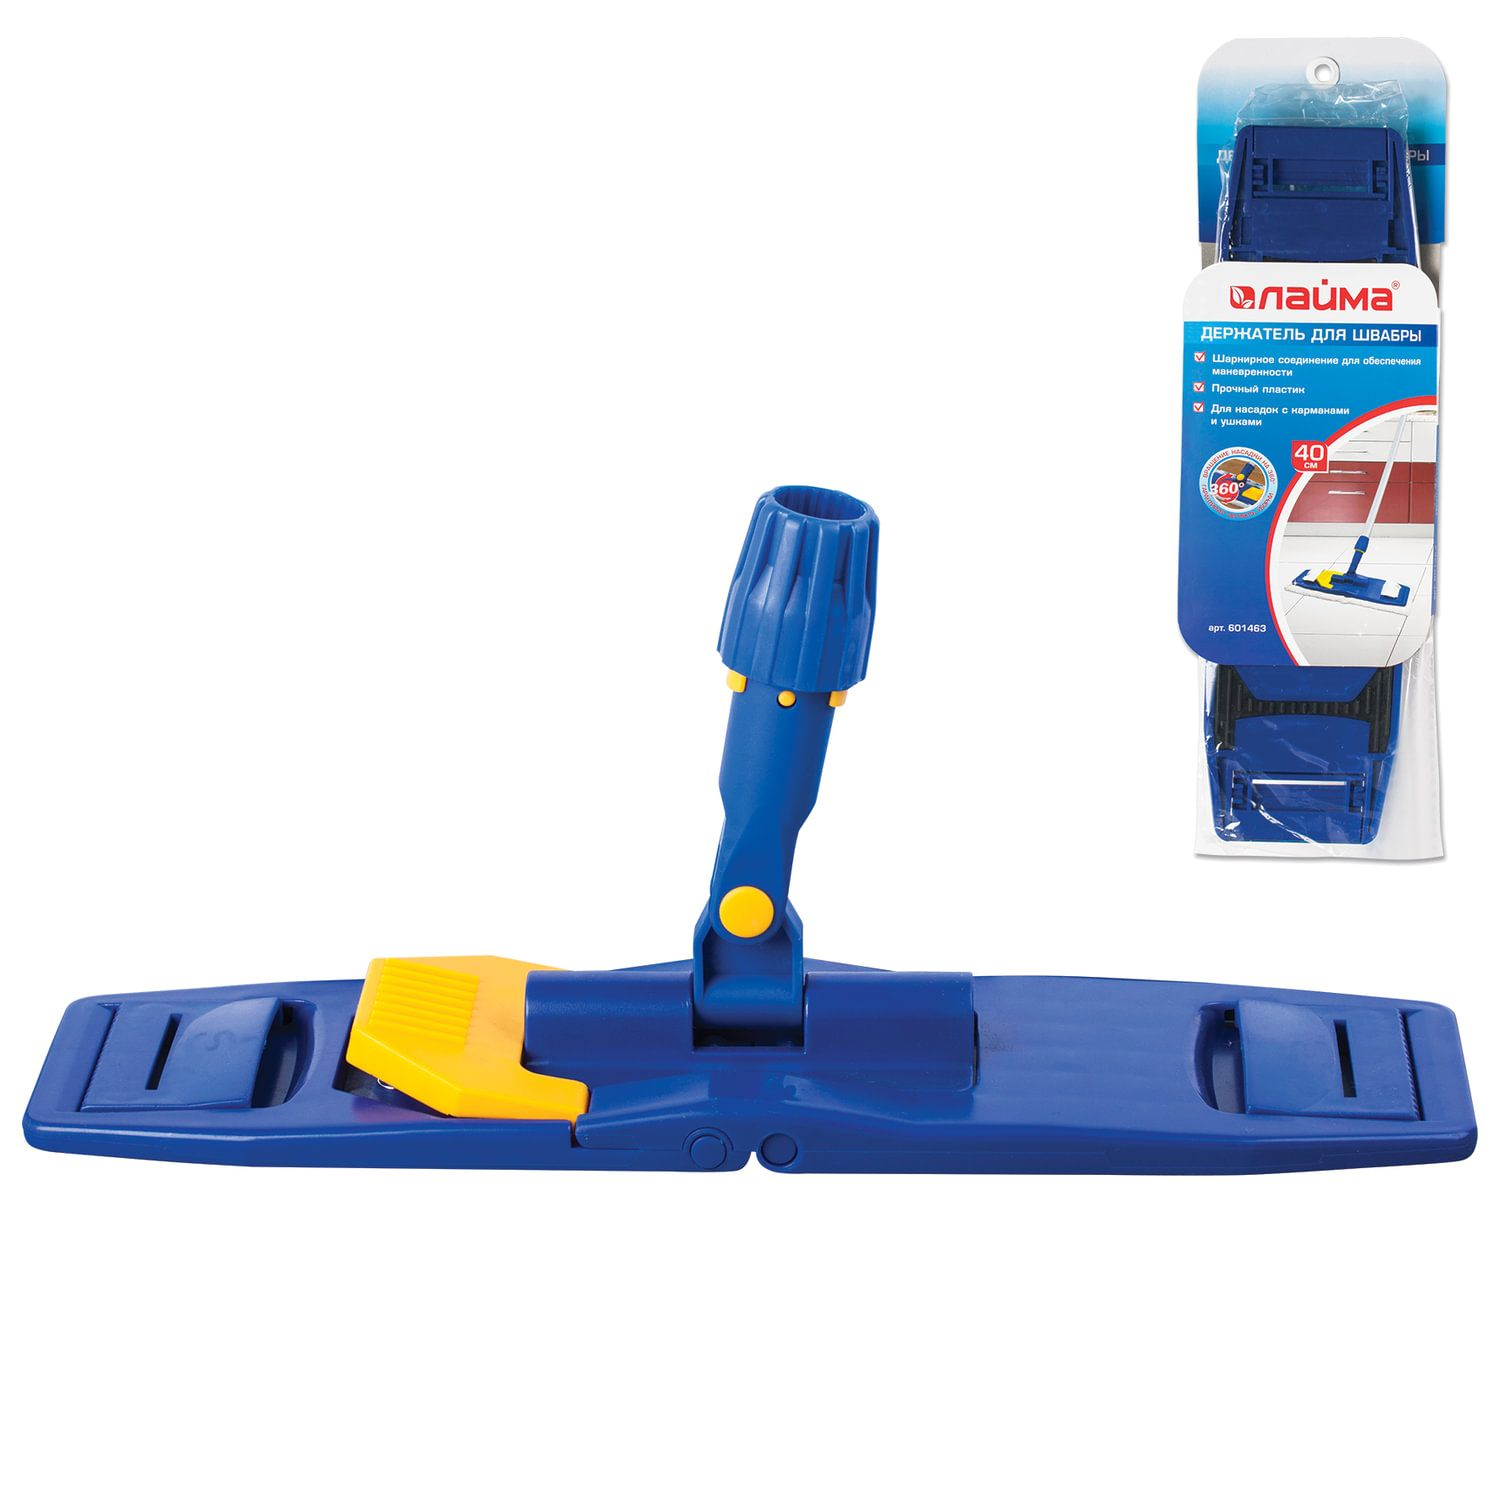 LIMA / Flounder holder 40 cm, for flat MOPs (TYPE U / K, K, UV), with clips, cuttings type A and B